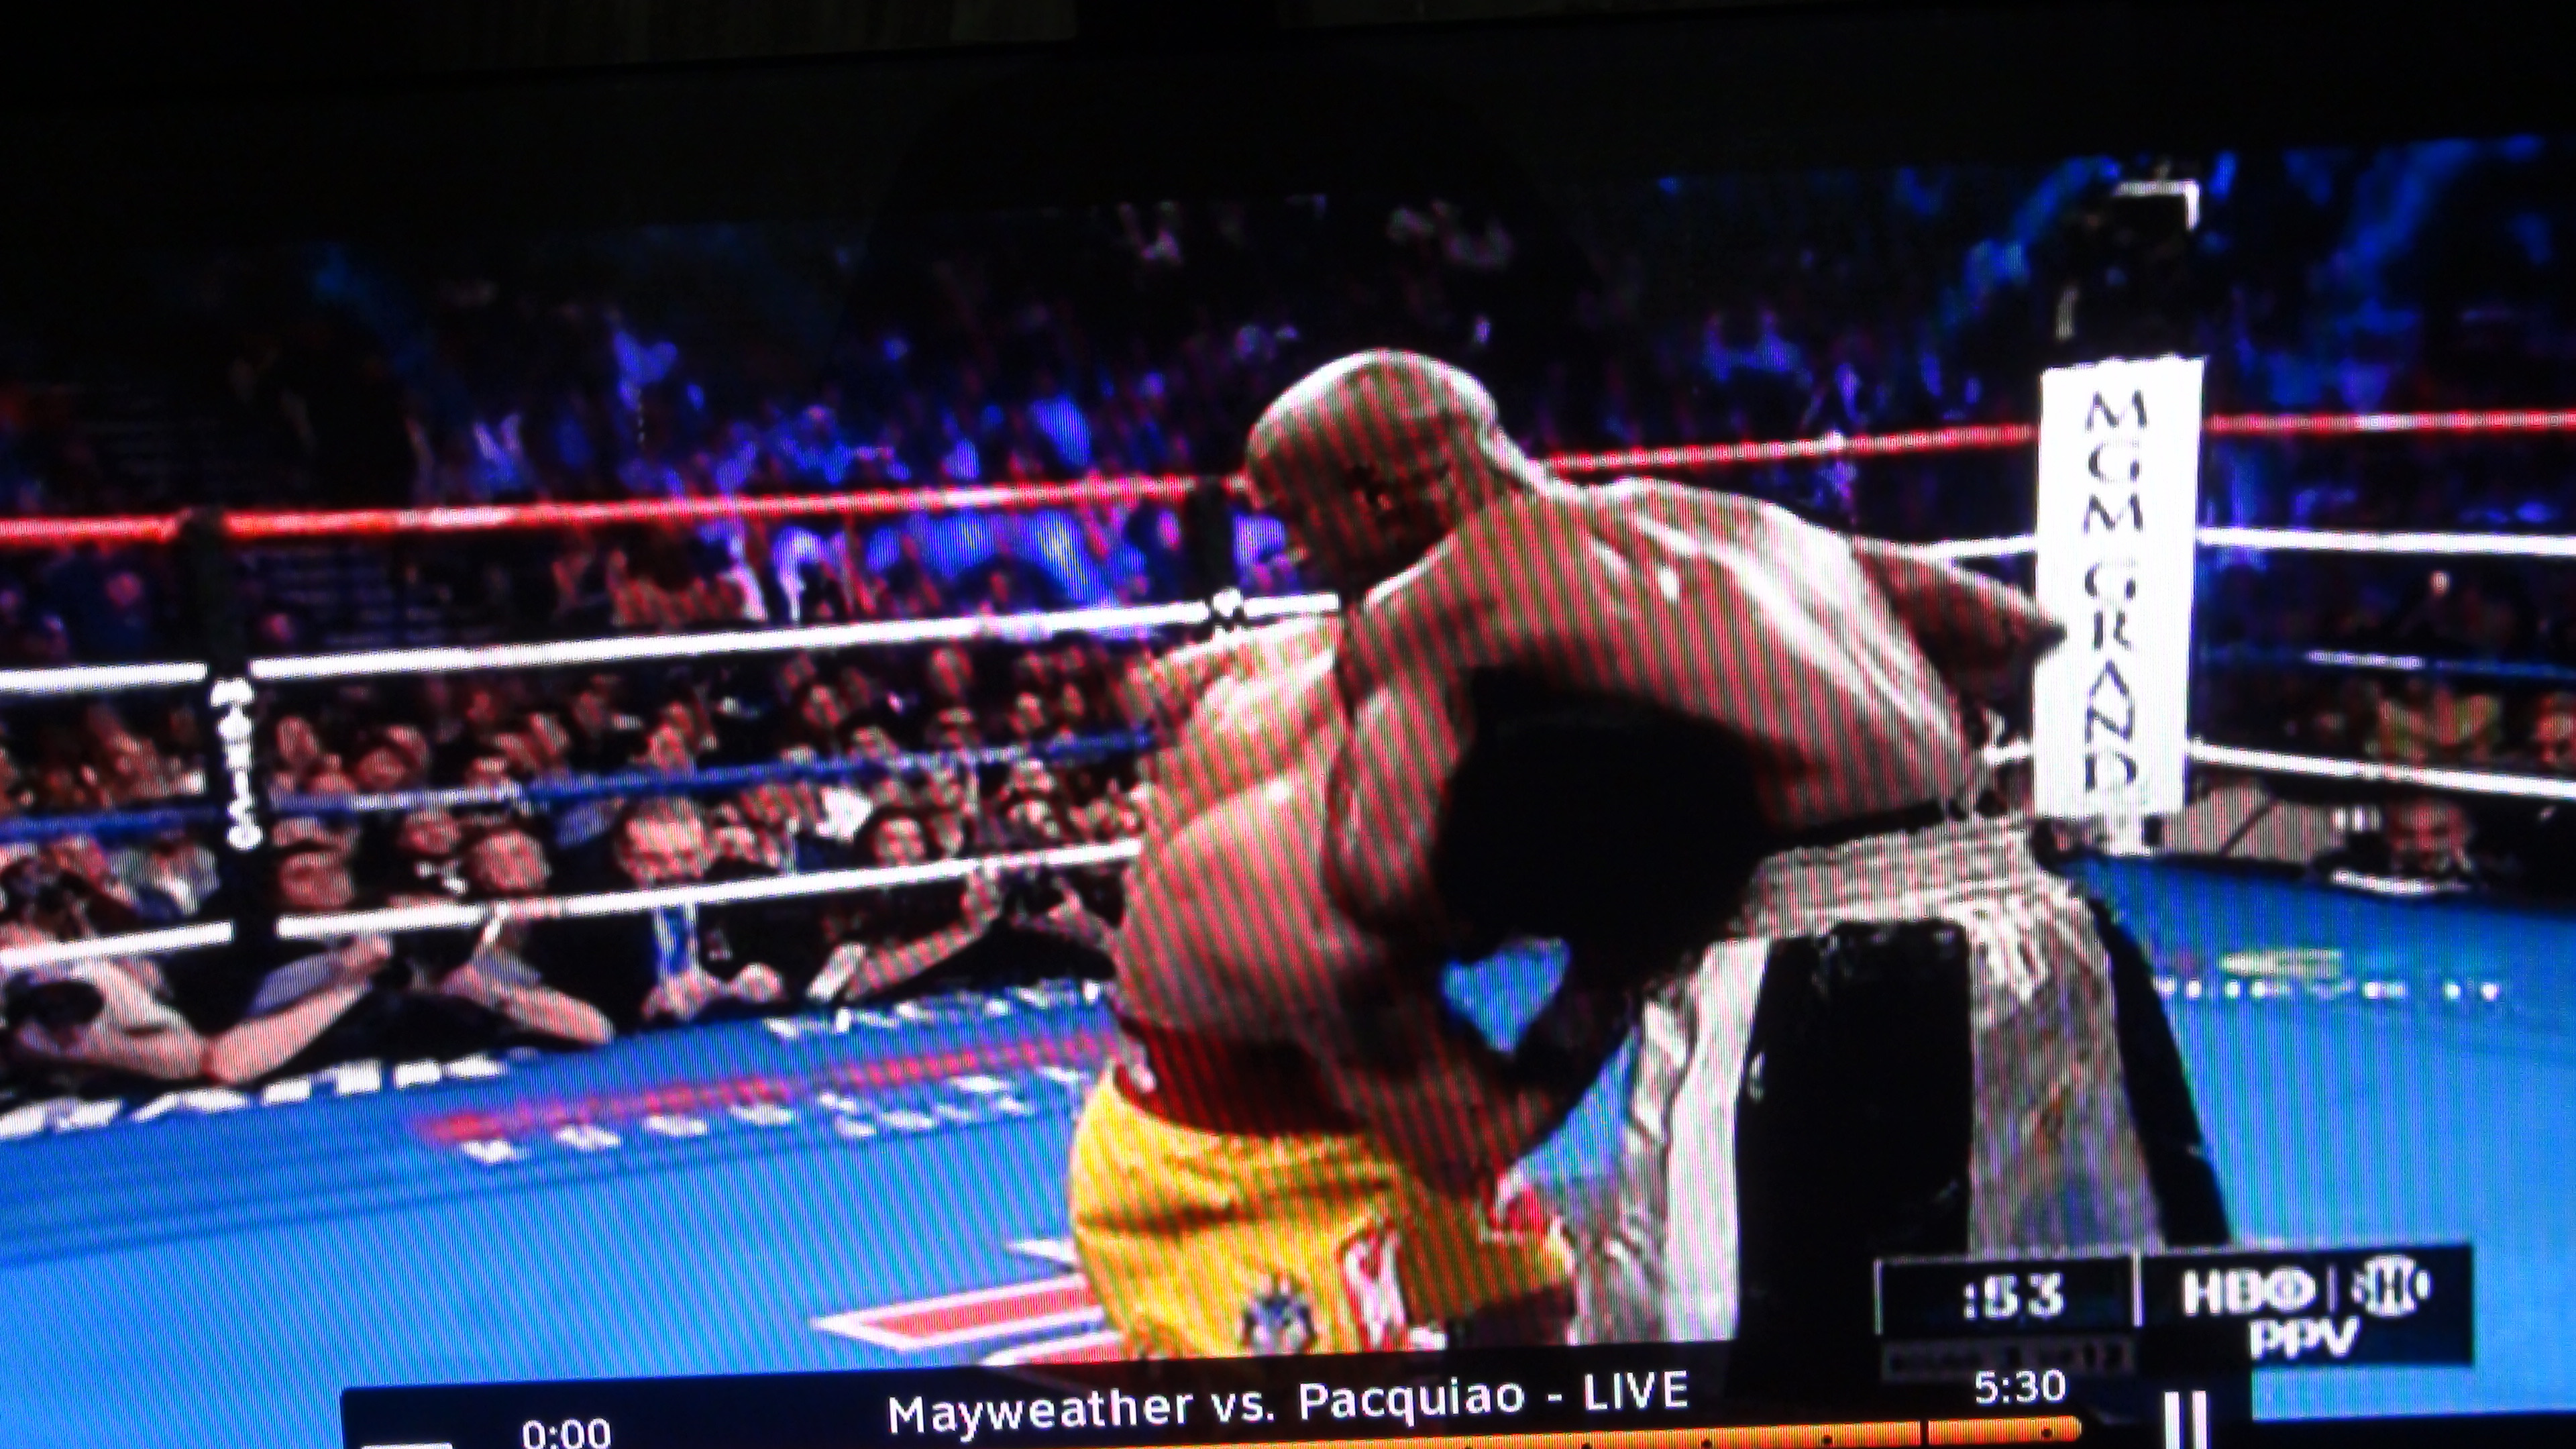 Floyd Mayweather's run and hug strategy may have won him the fight in technical terms, but made him the loser in the eyes of people watching.